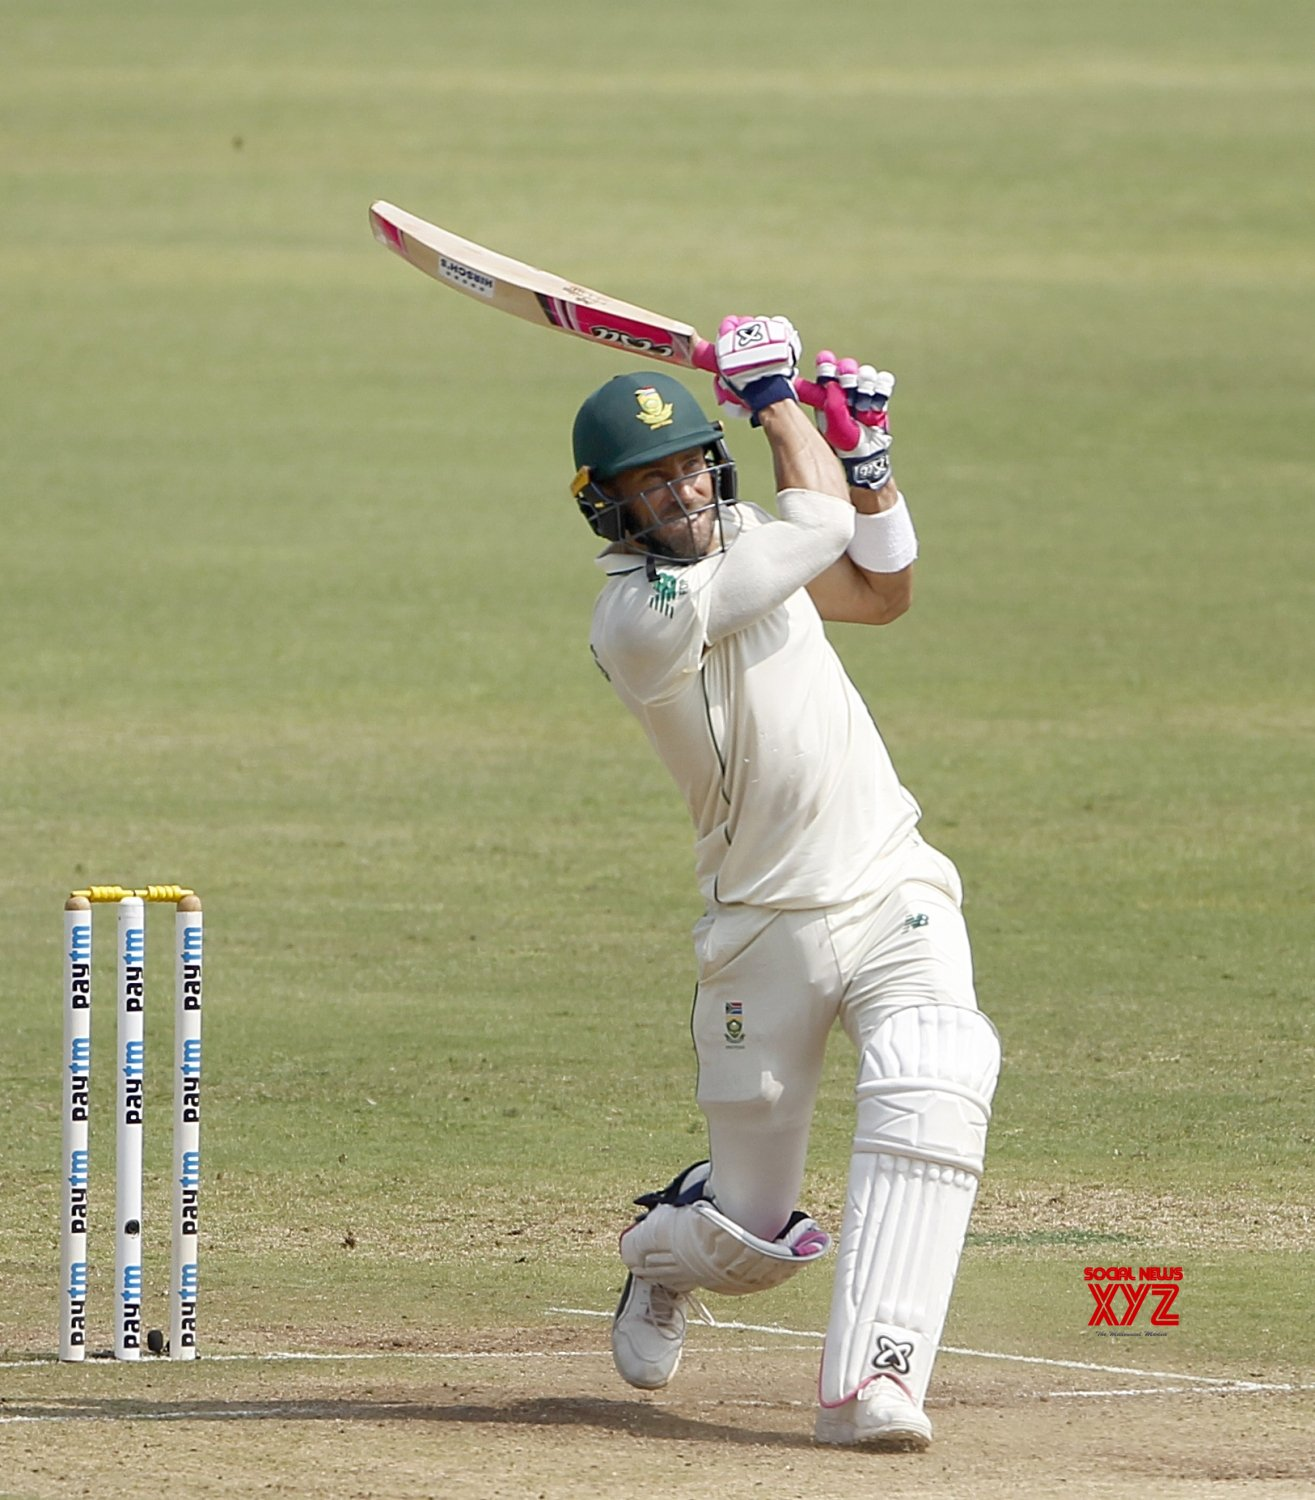 Pune: 2nd Test - India Vs South Africa - Day 3 (Batch - 9) #Gallery